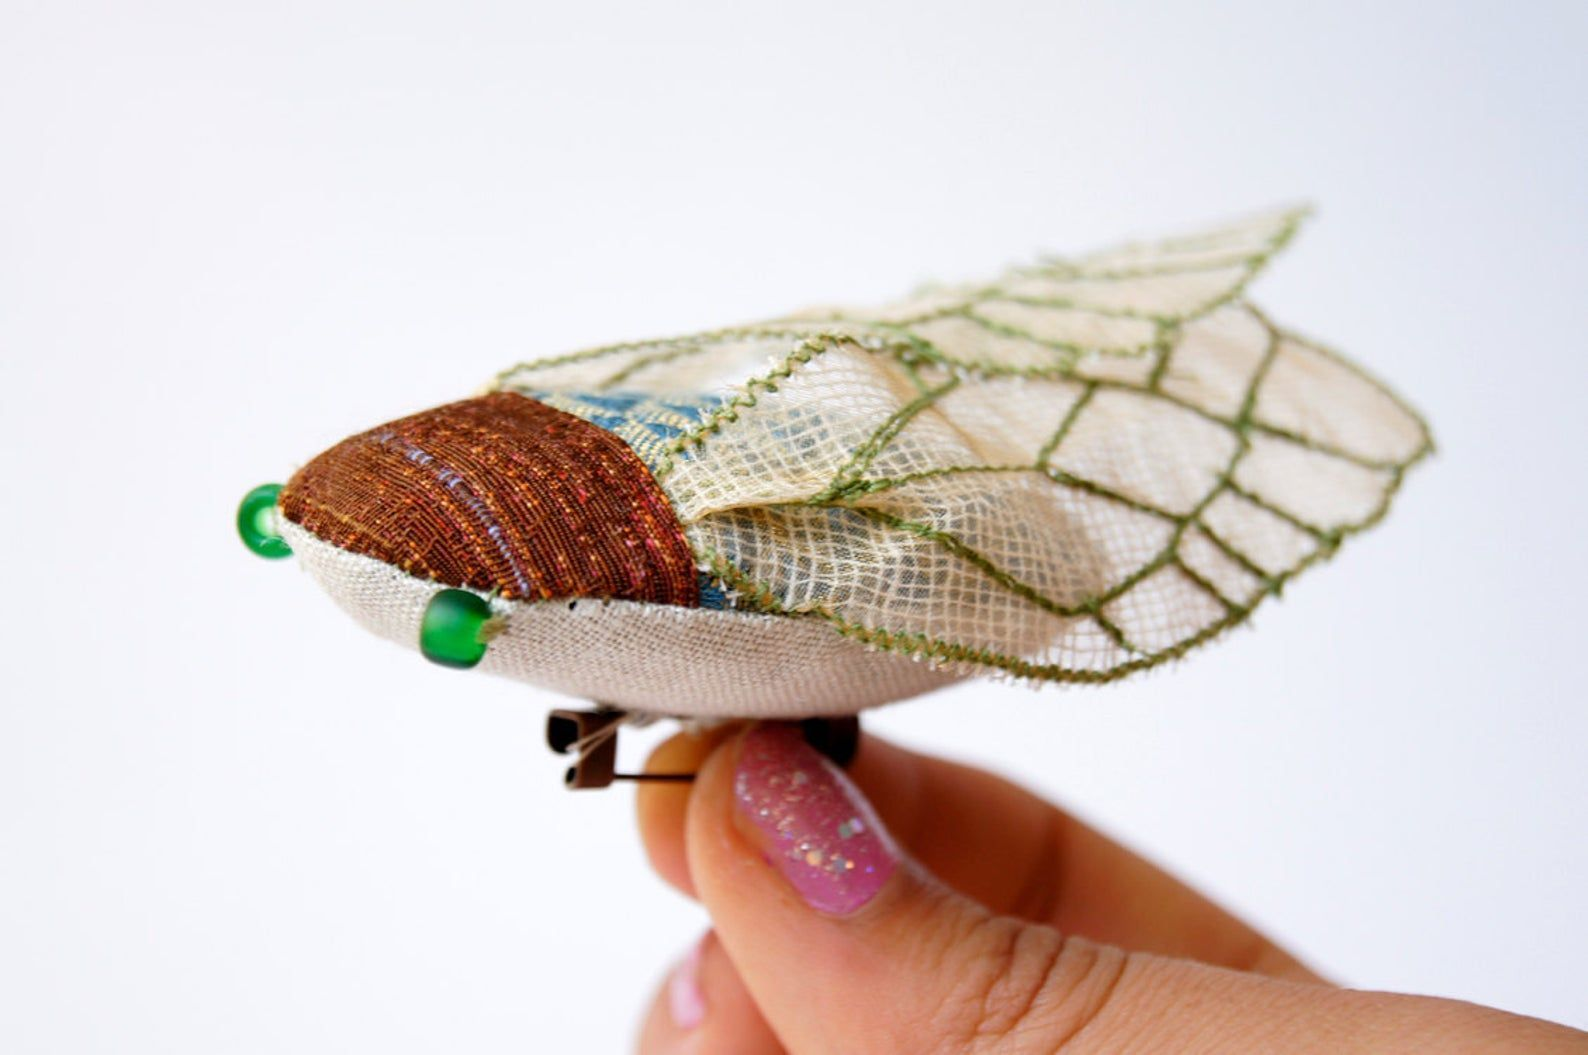 Cicada Statement Brooch Fiber Art Insect Natural History  Nature Lover  Woodland Fashion Accessory Gift for Women#accessory #art #brooch #cicada #fashion #fiber #gift #history #insect #lover #natural #nature #statement #women #woodland